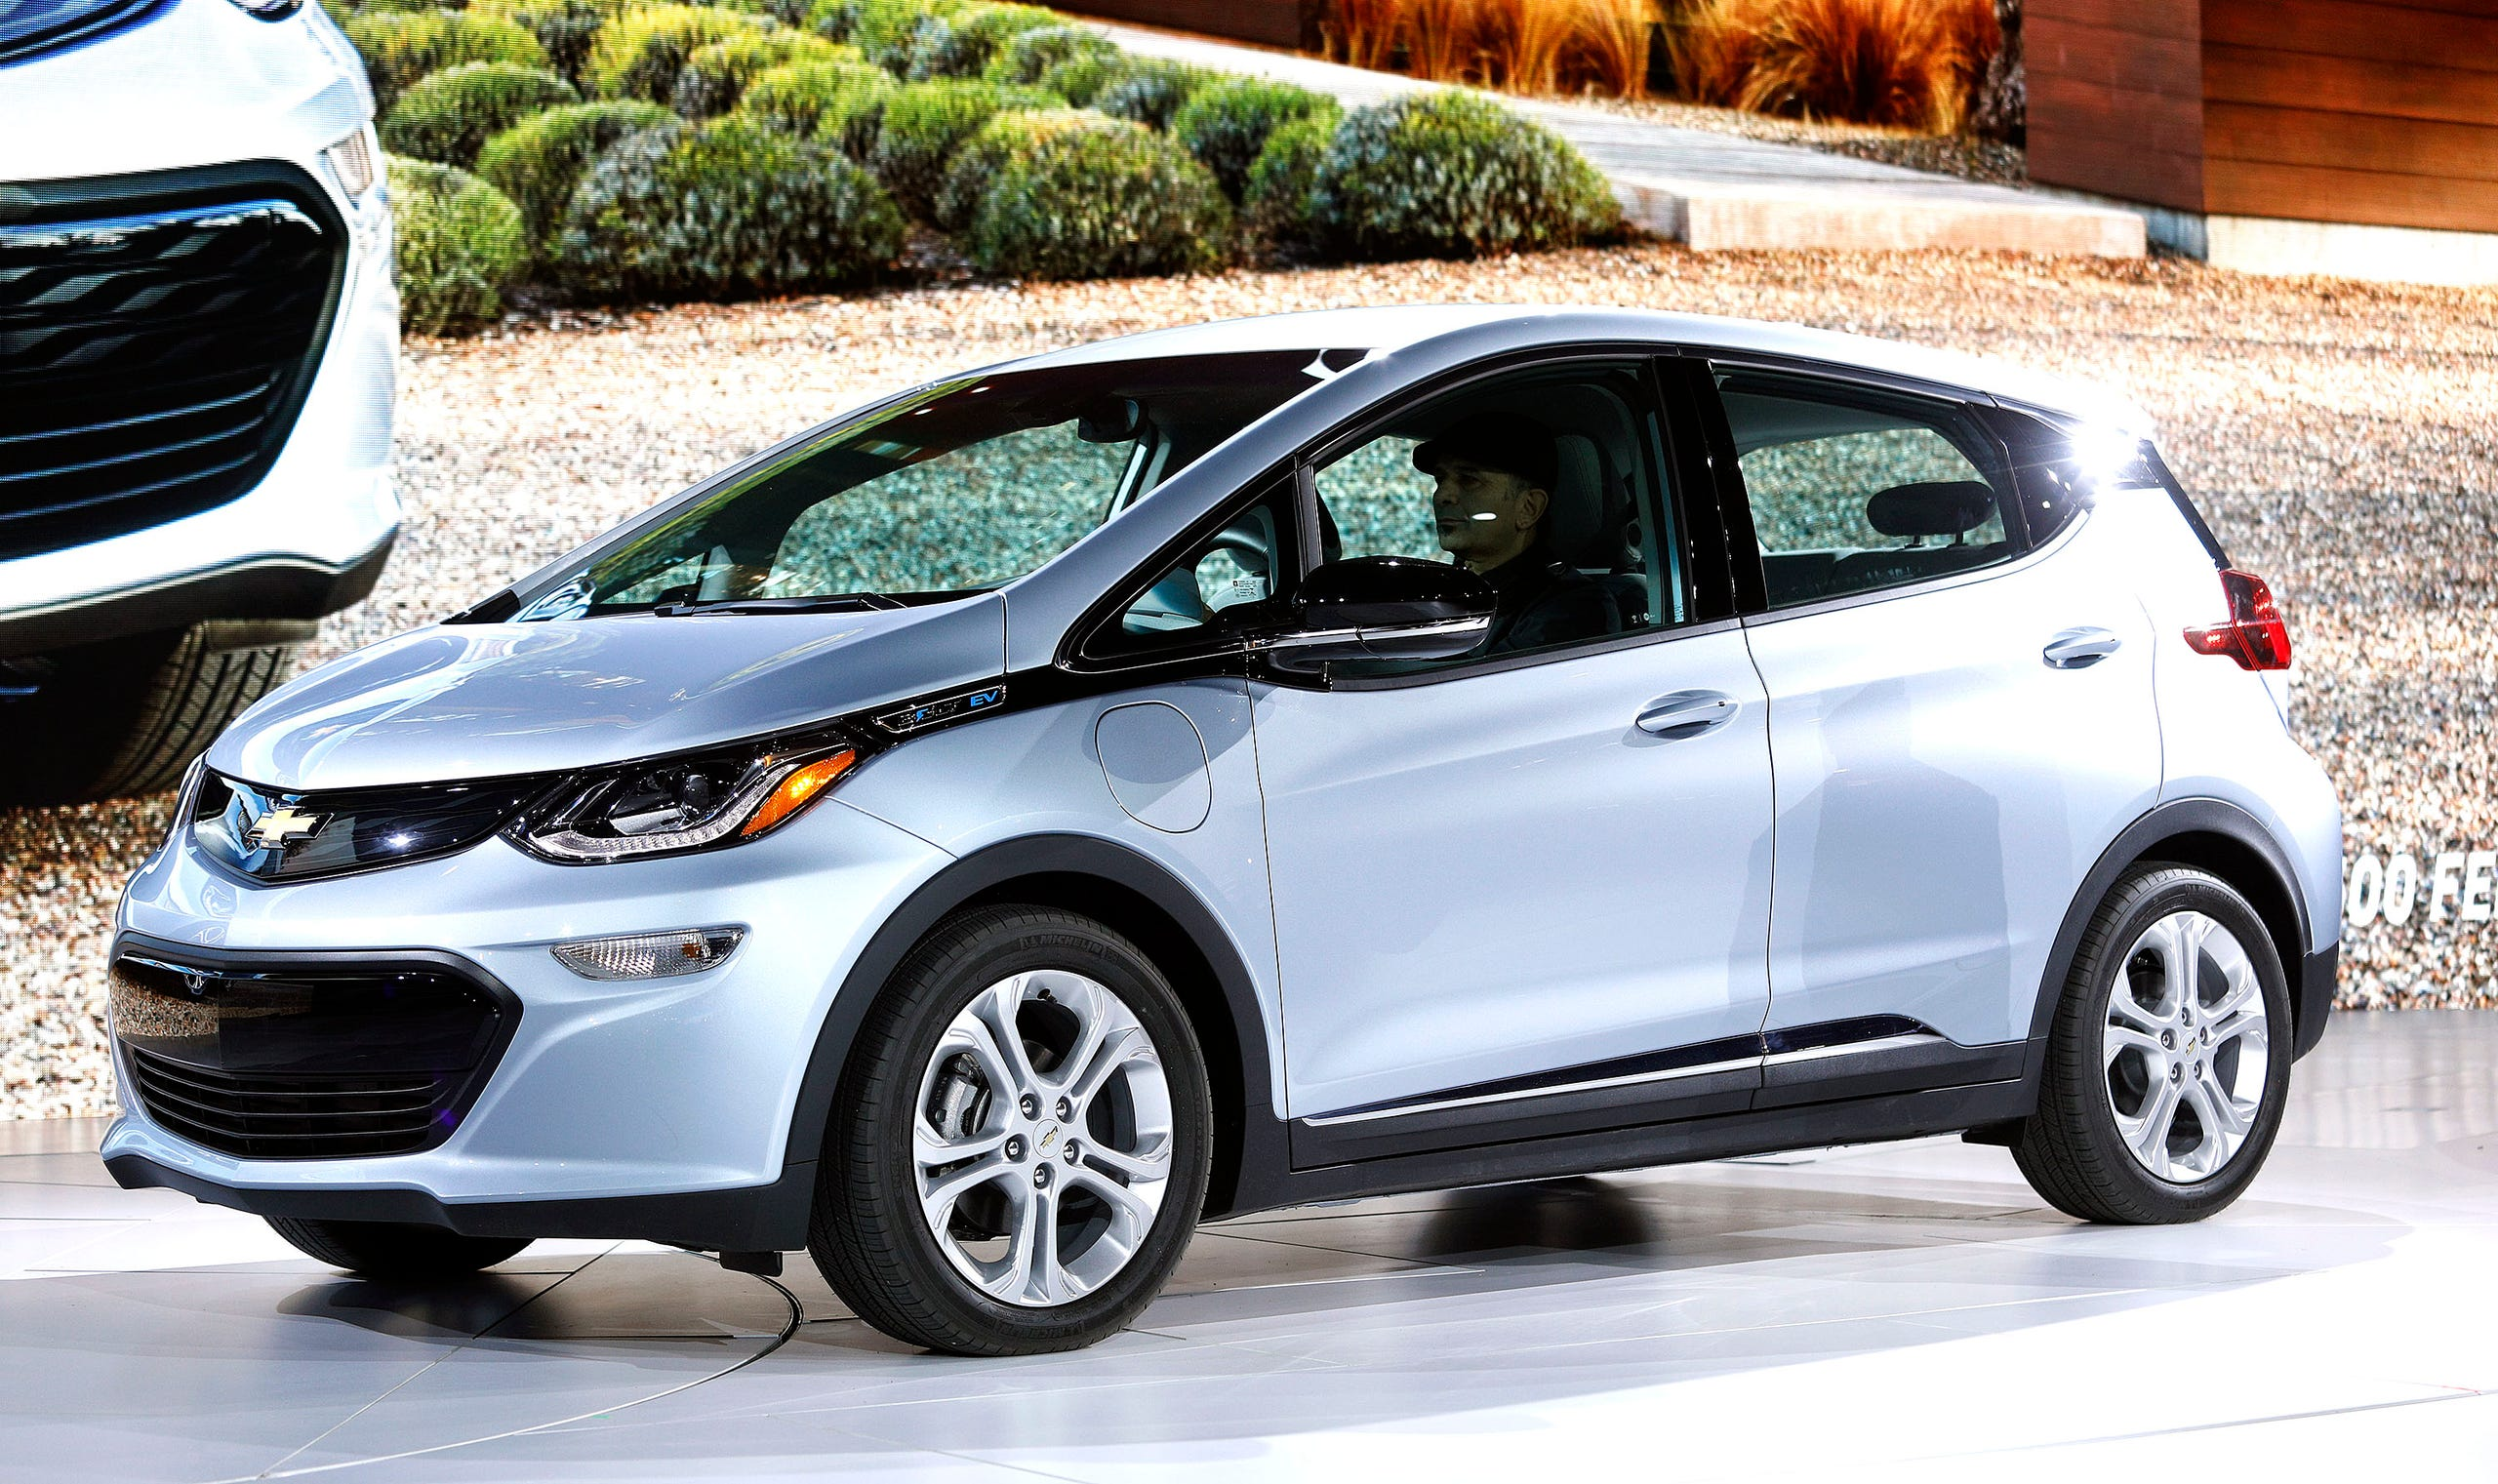 The Chevrolet Bolt Ev Is Shown On Stage At 2017 North American International Auto Show